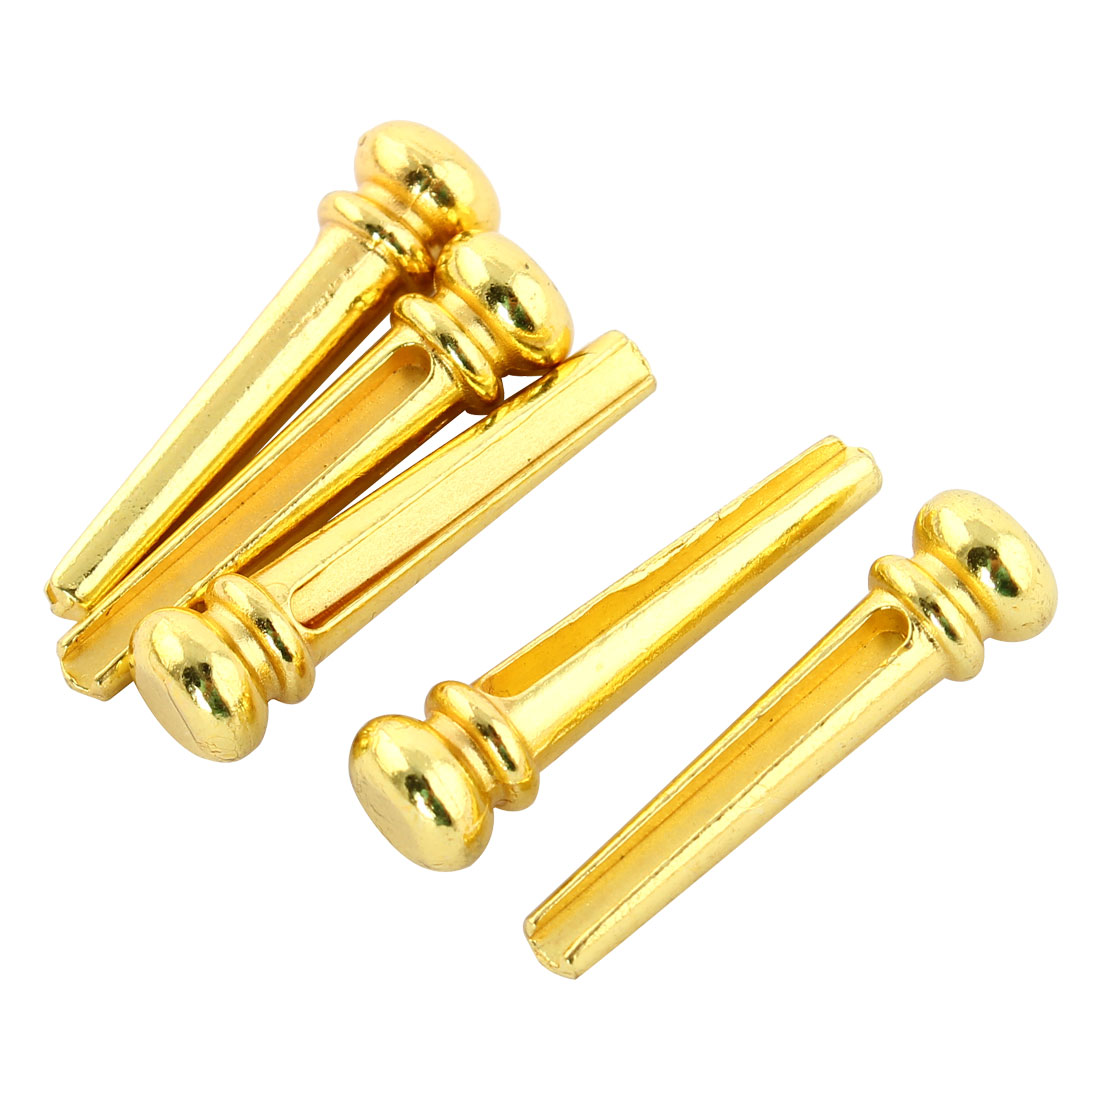 5pcs Metal Instrument Acoustic Replacement Parts Guitar Bridge Pins Gold Tone